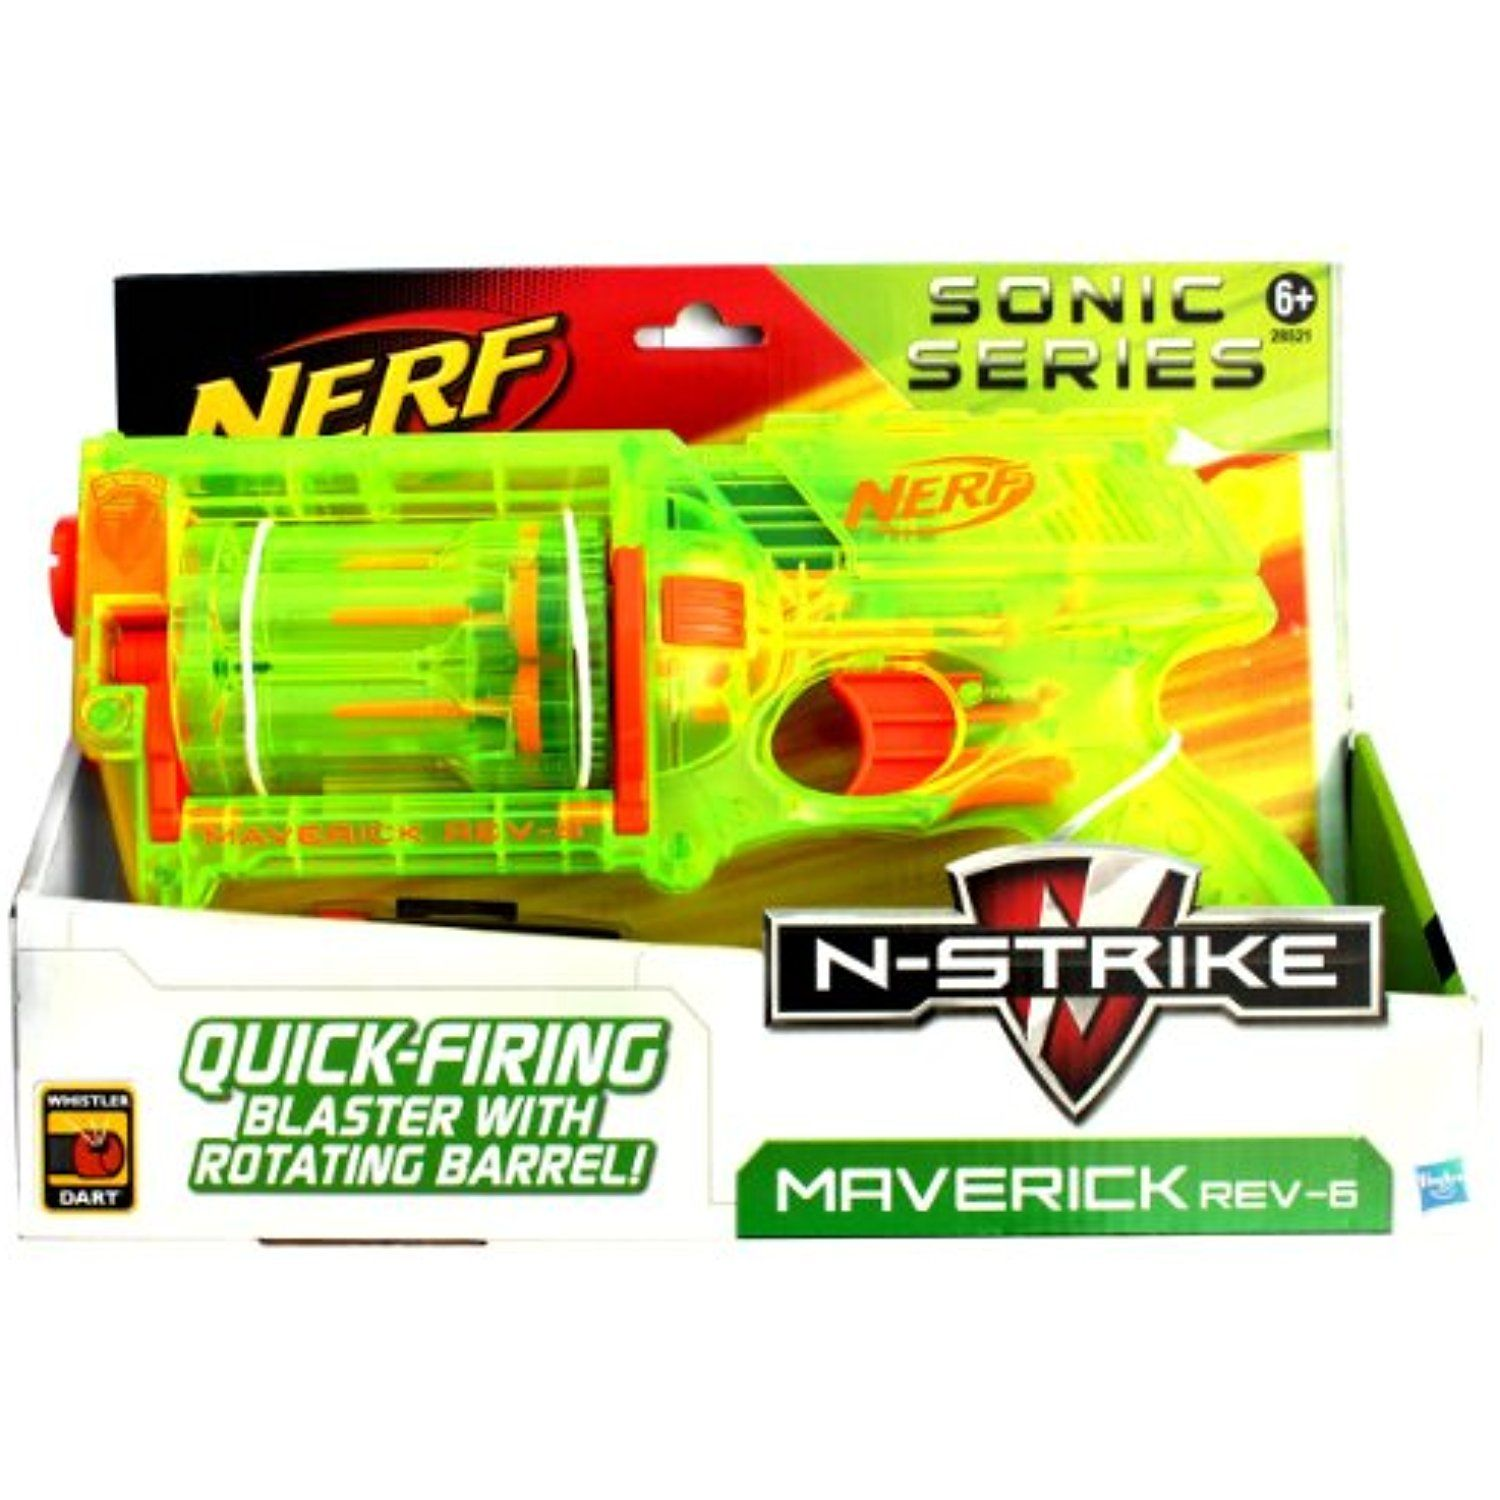 NERF N Strike Maverick Rev 6 Sonic Series Find out more about